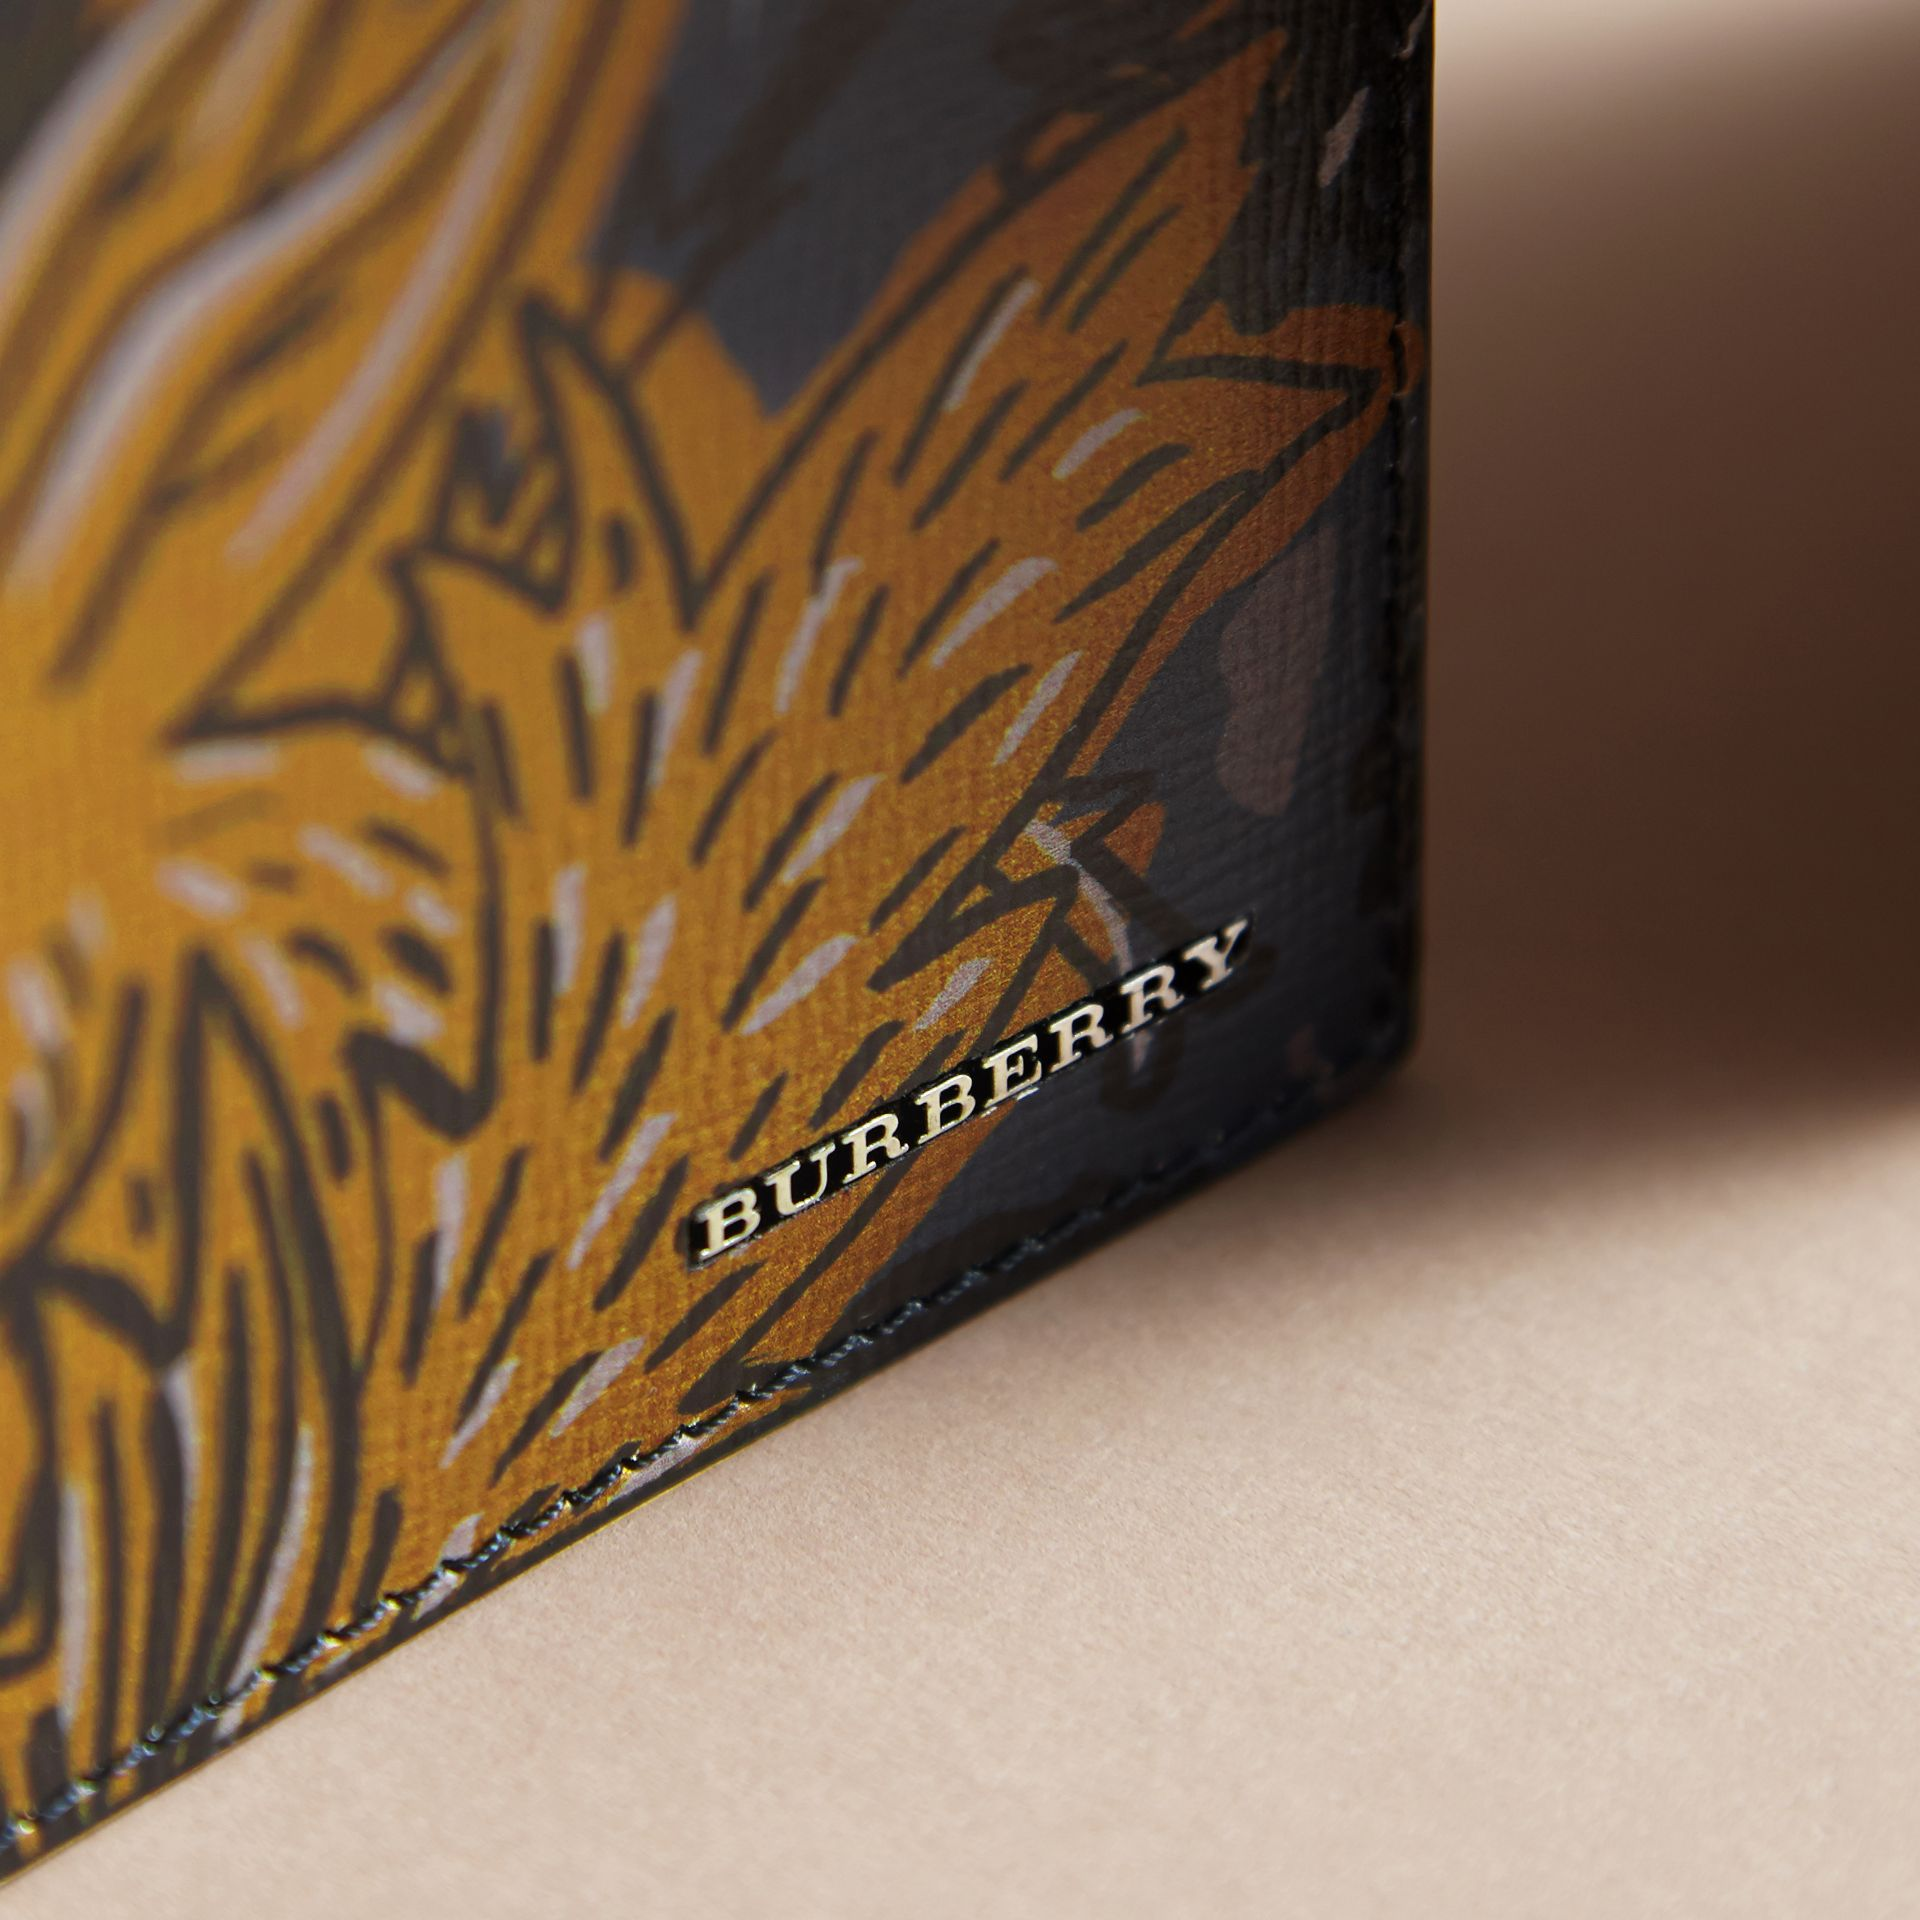 Beasts Print Leather Folding Wallet in Navy Grey - Men | Burberry - gallery image 1